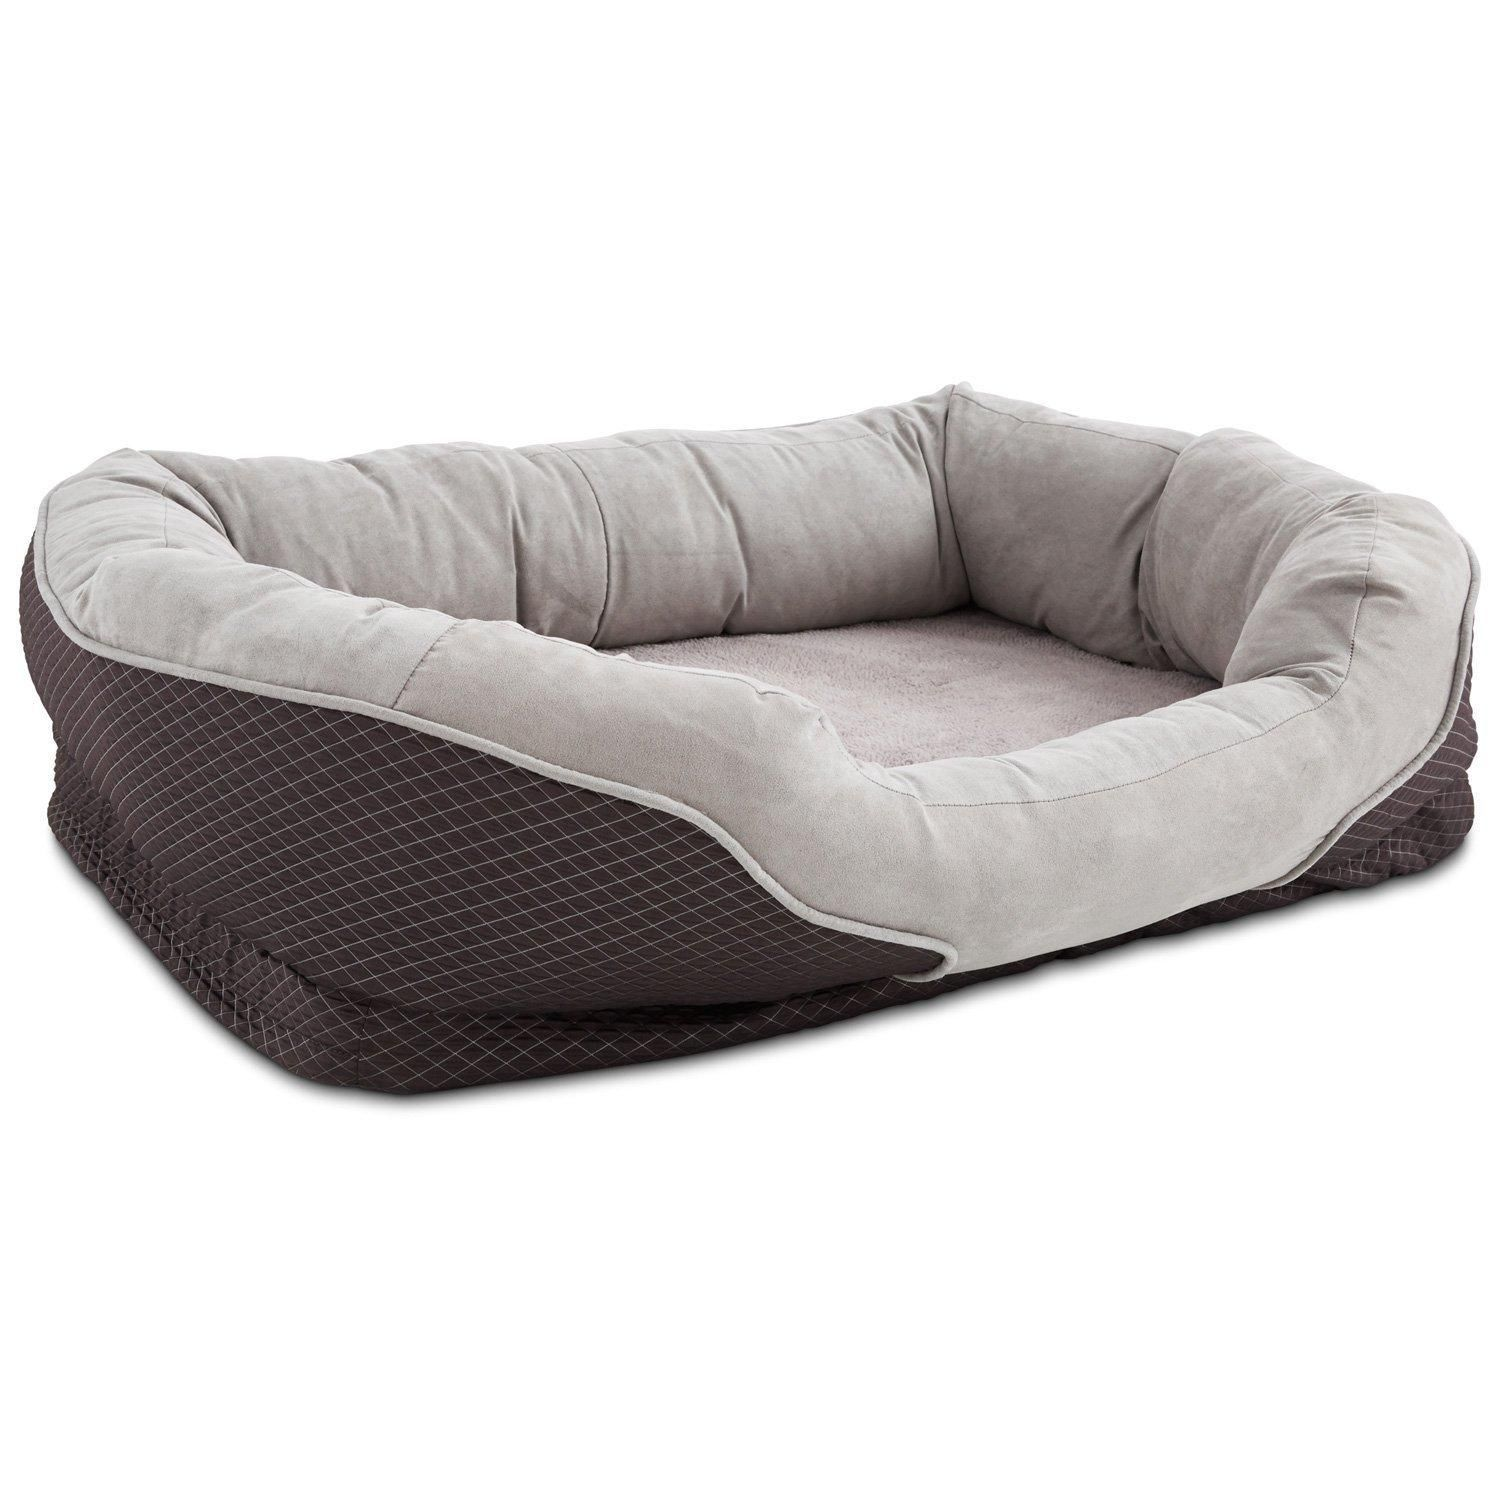 fascinating luxury sofa beds picture-Fresh Luxury sofa Beds Construction